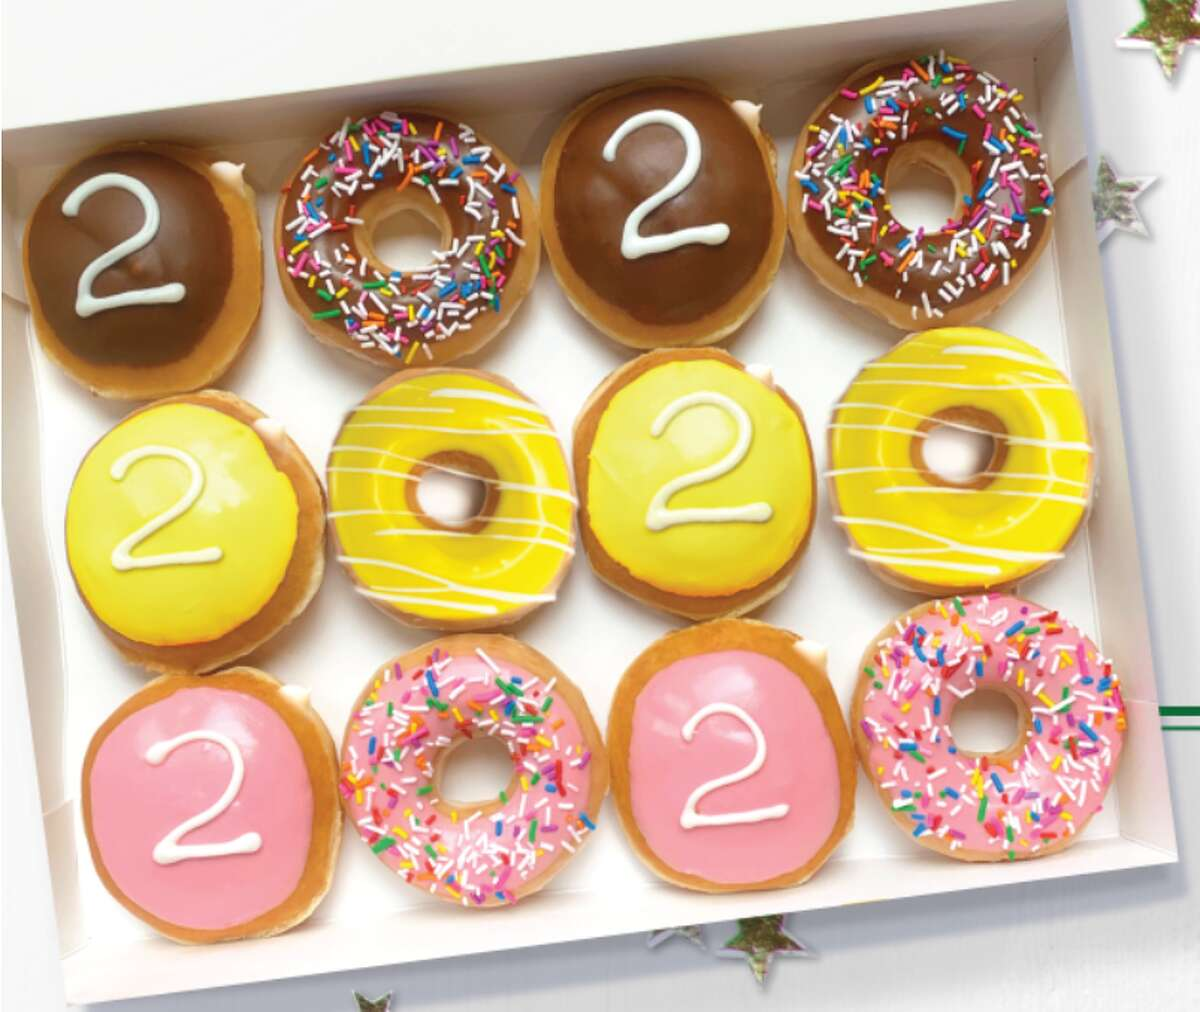 Seniors can get one 2020 Graduate Dozen FREE ON May 19 by wearing their cap and gown, or other Class of 2020 swag proving their senior status, to their local Krispy Kreme. The dozen includes an assortment of classic varieties: Chocolate Iced Kreme Filled, Strawberry Iced Kreme Filled, Cake Batter Filled, Chocolate Iced with Sprinkles, Strawberry Iced with Sprinkles, and Yellow Iced Original Glazed Doughnuts.